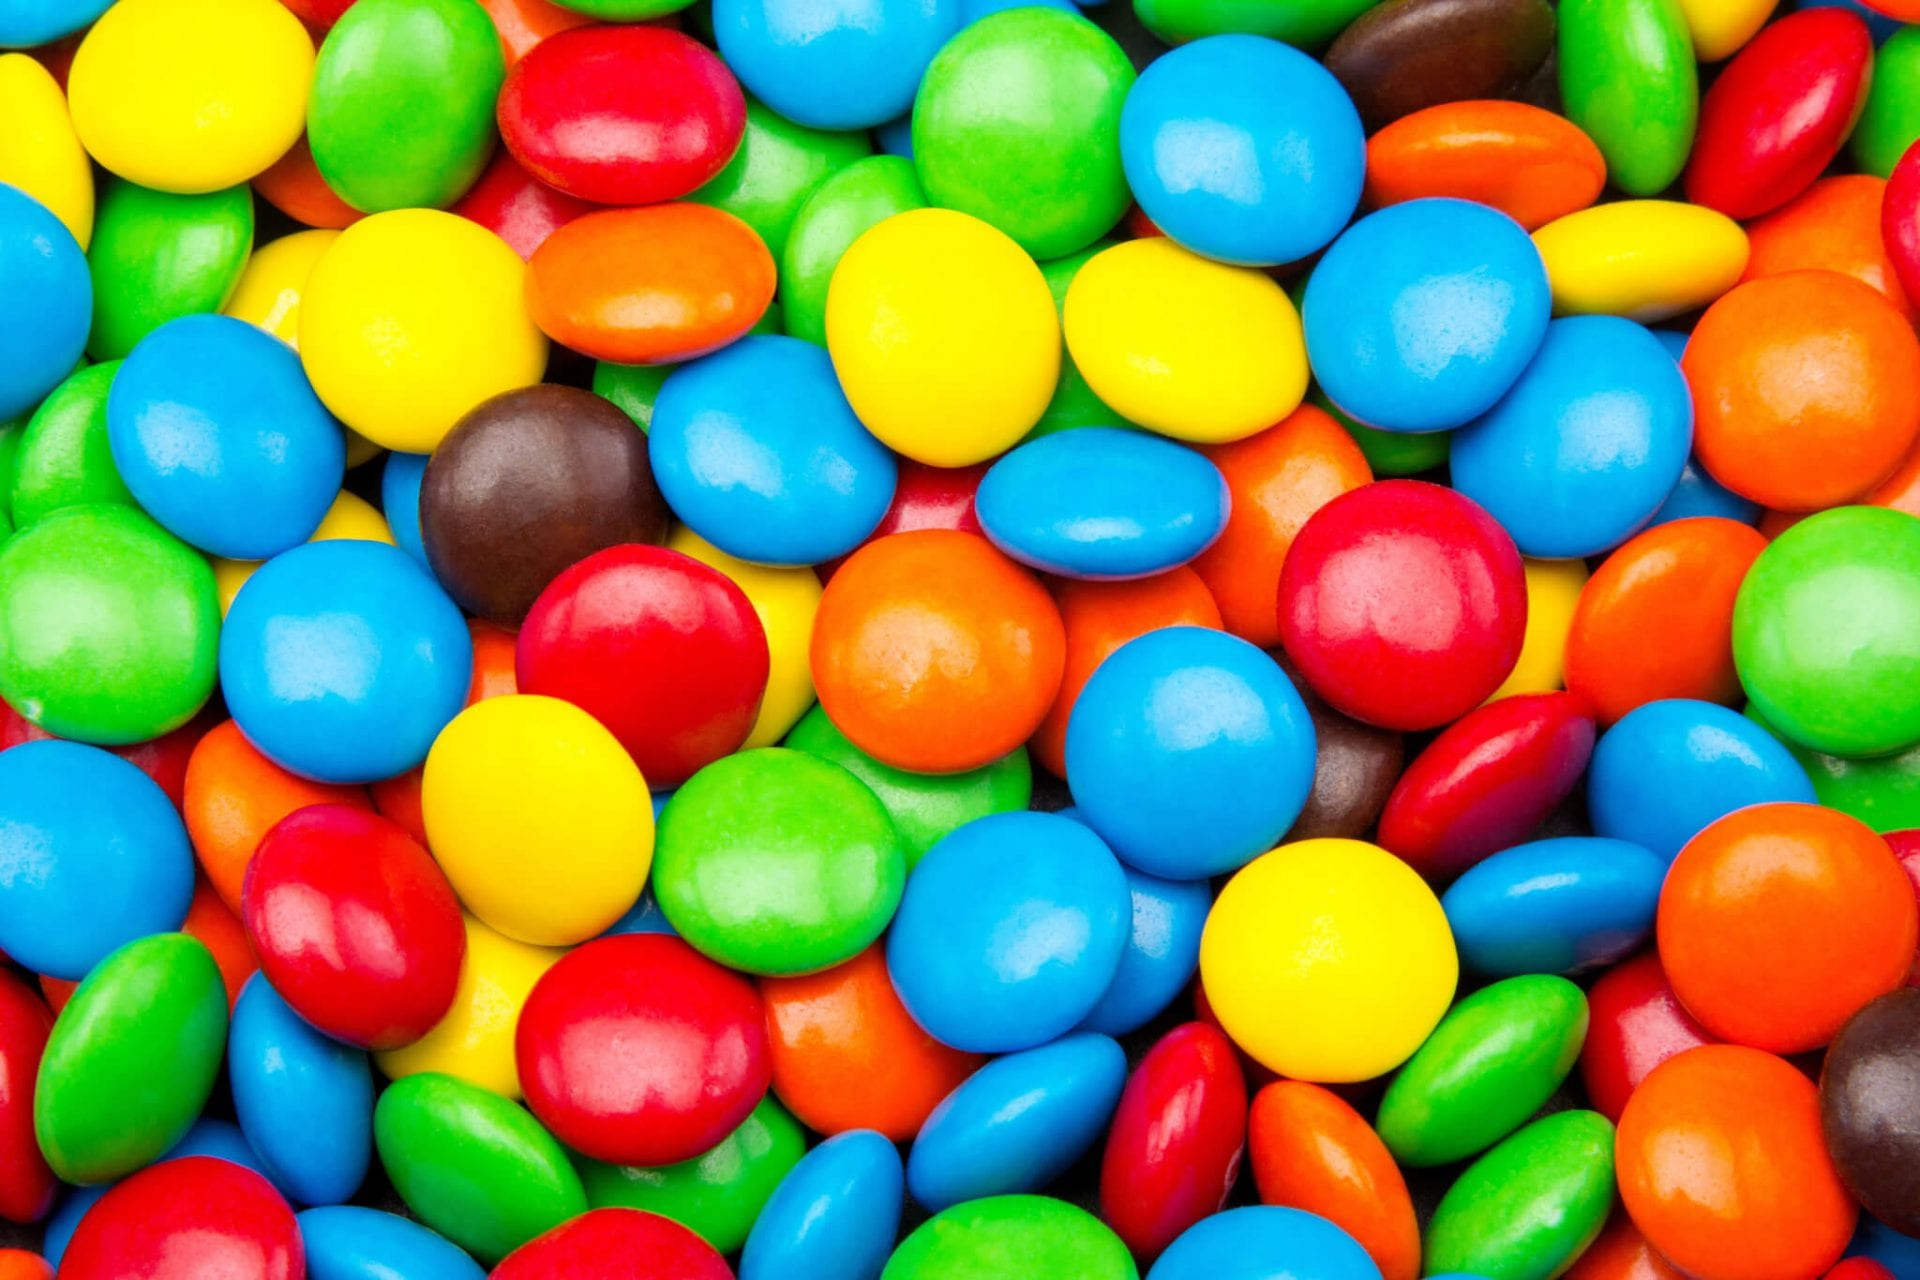 Image of colorful candy